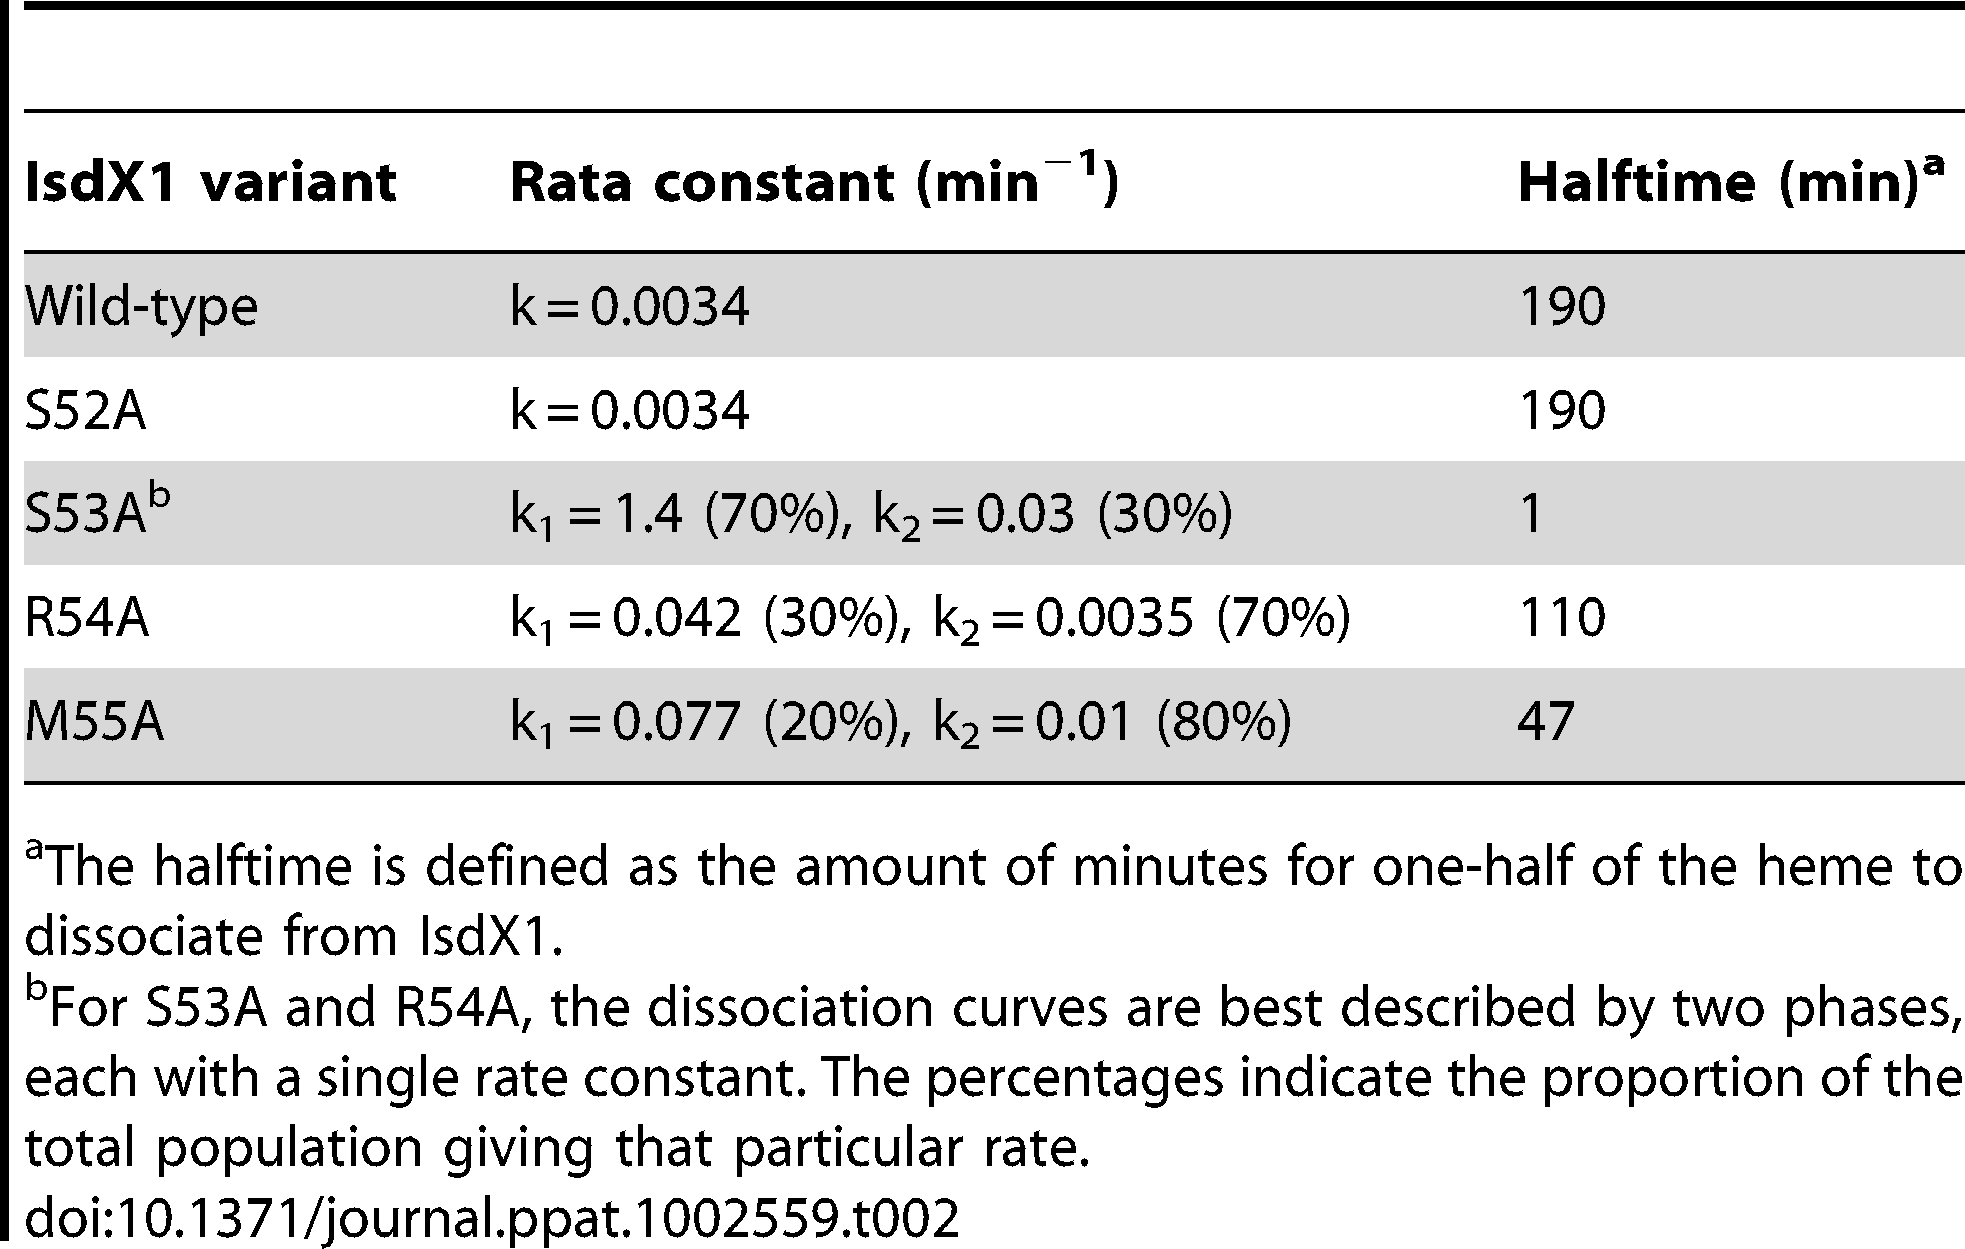 Rate constants for heme dissociation from IsdX1 variants.